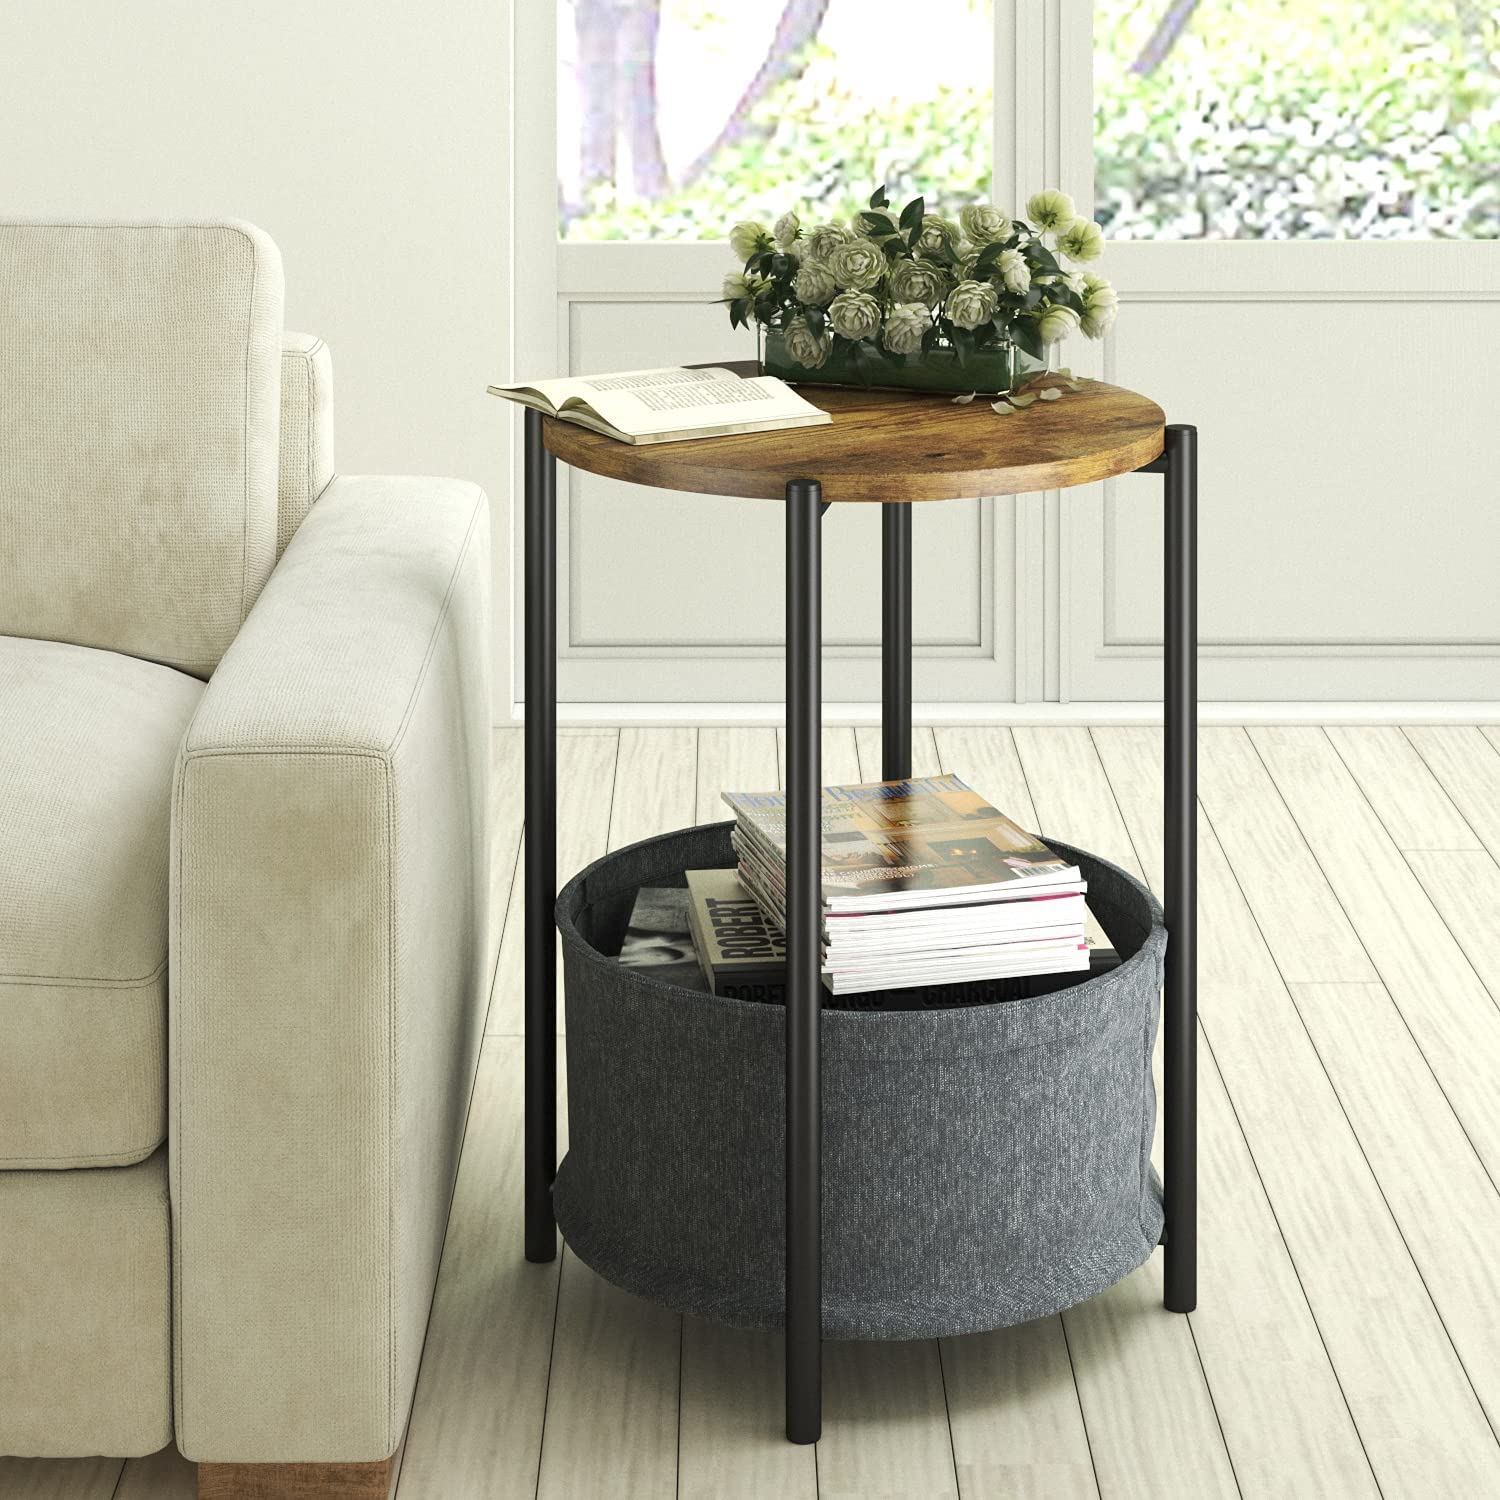 Allewie Round Side Table with Fabric Industrial Storage Selling rankings Max 51% OFF Basket